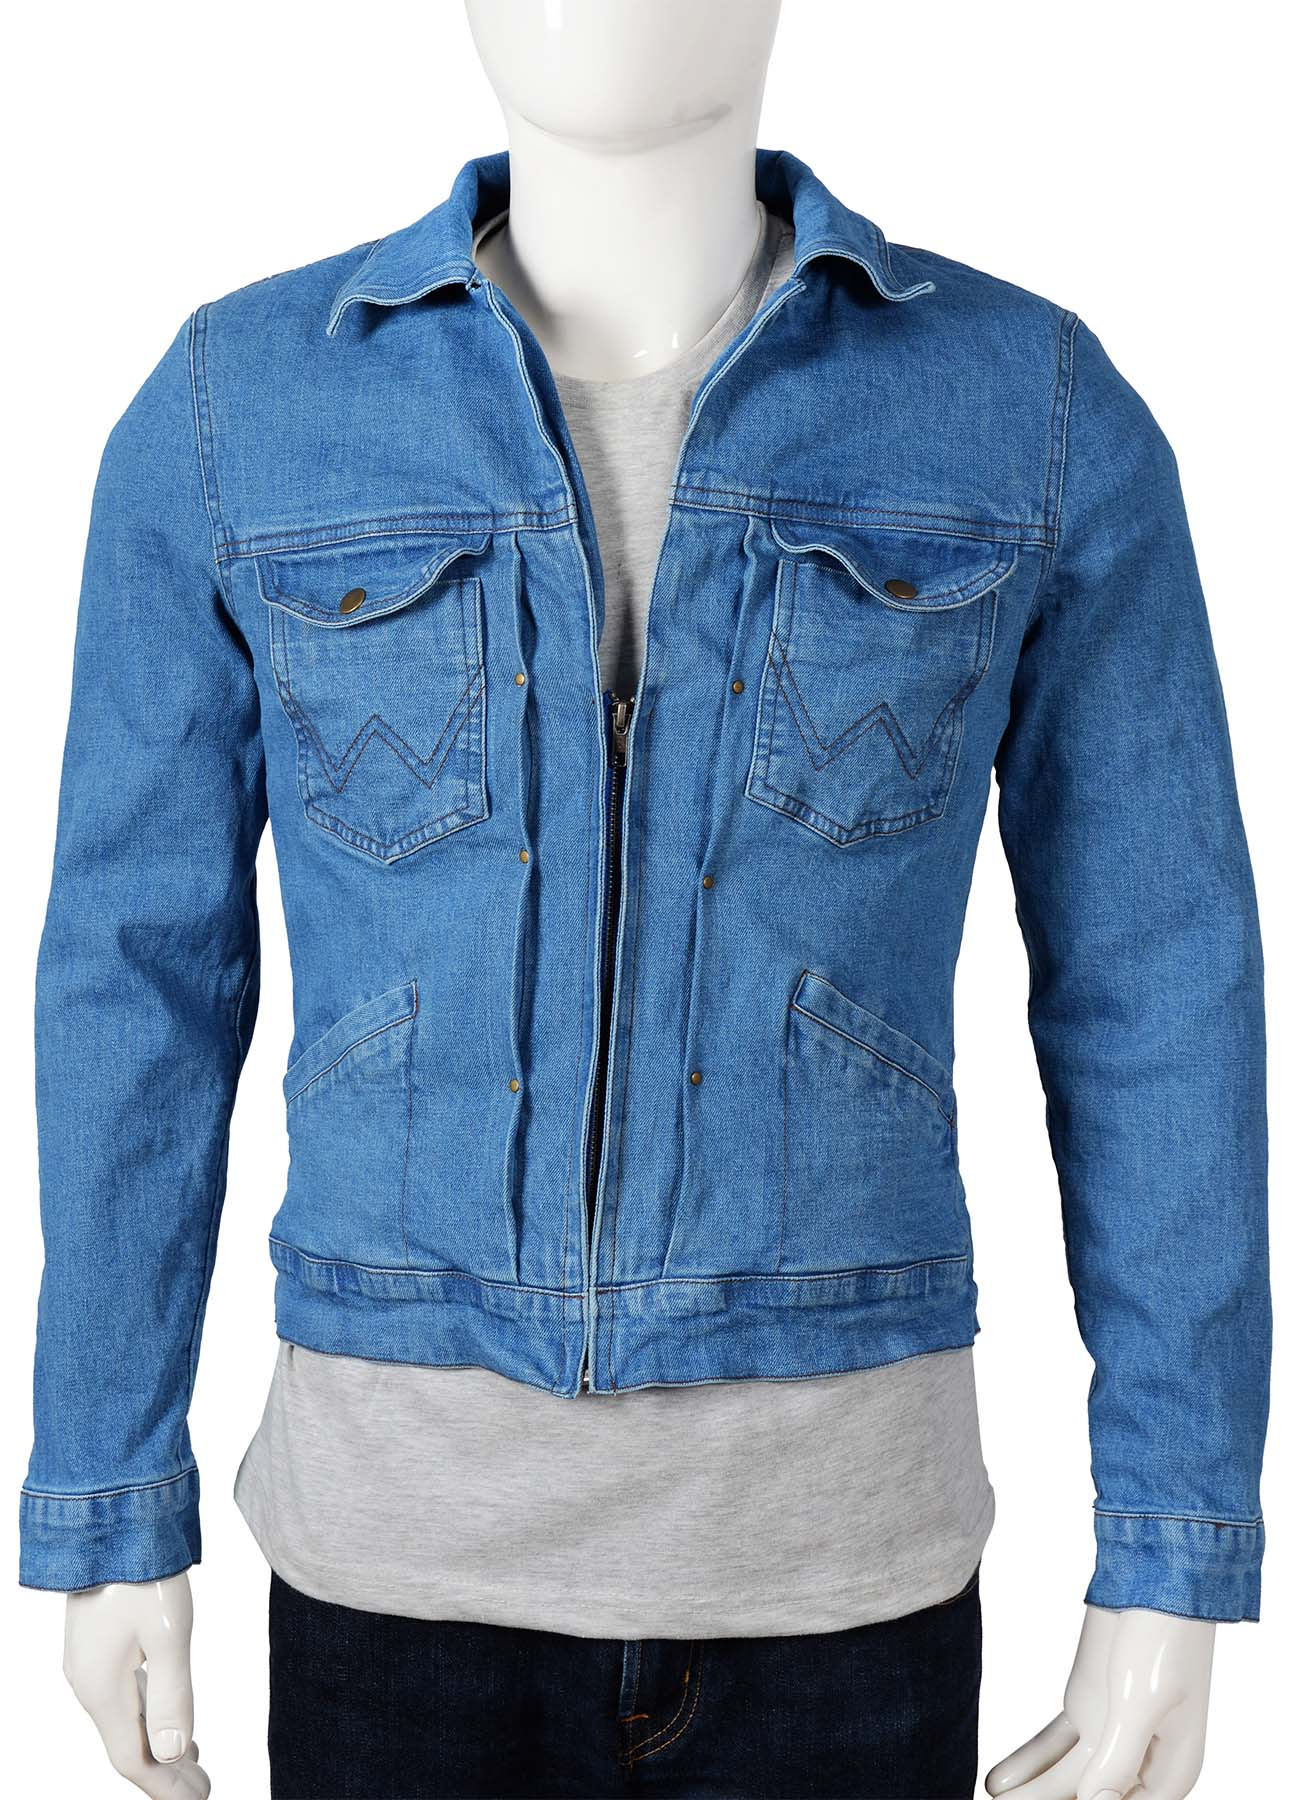 Cool Blue Zipper Denim Jacket with quilted Viscose Lining